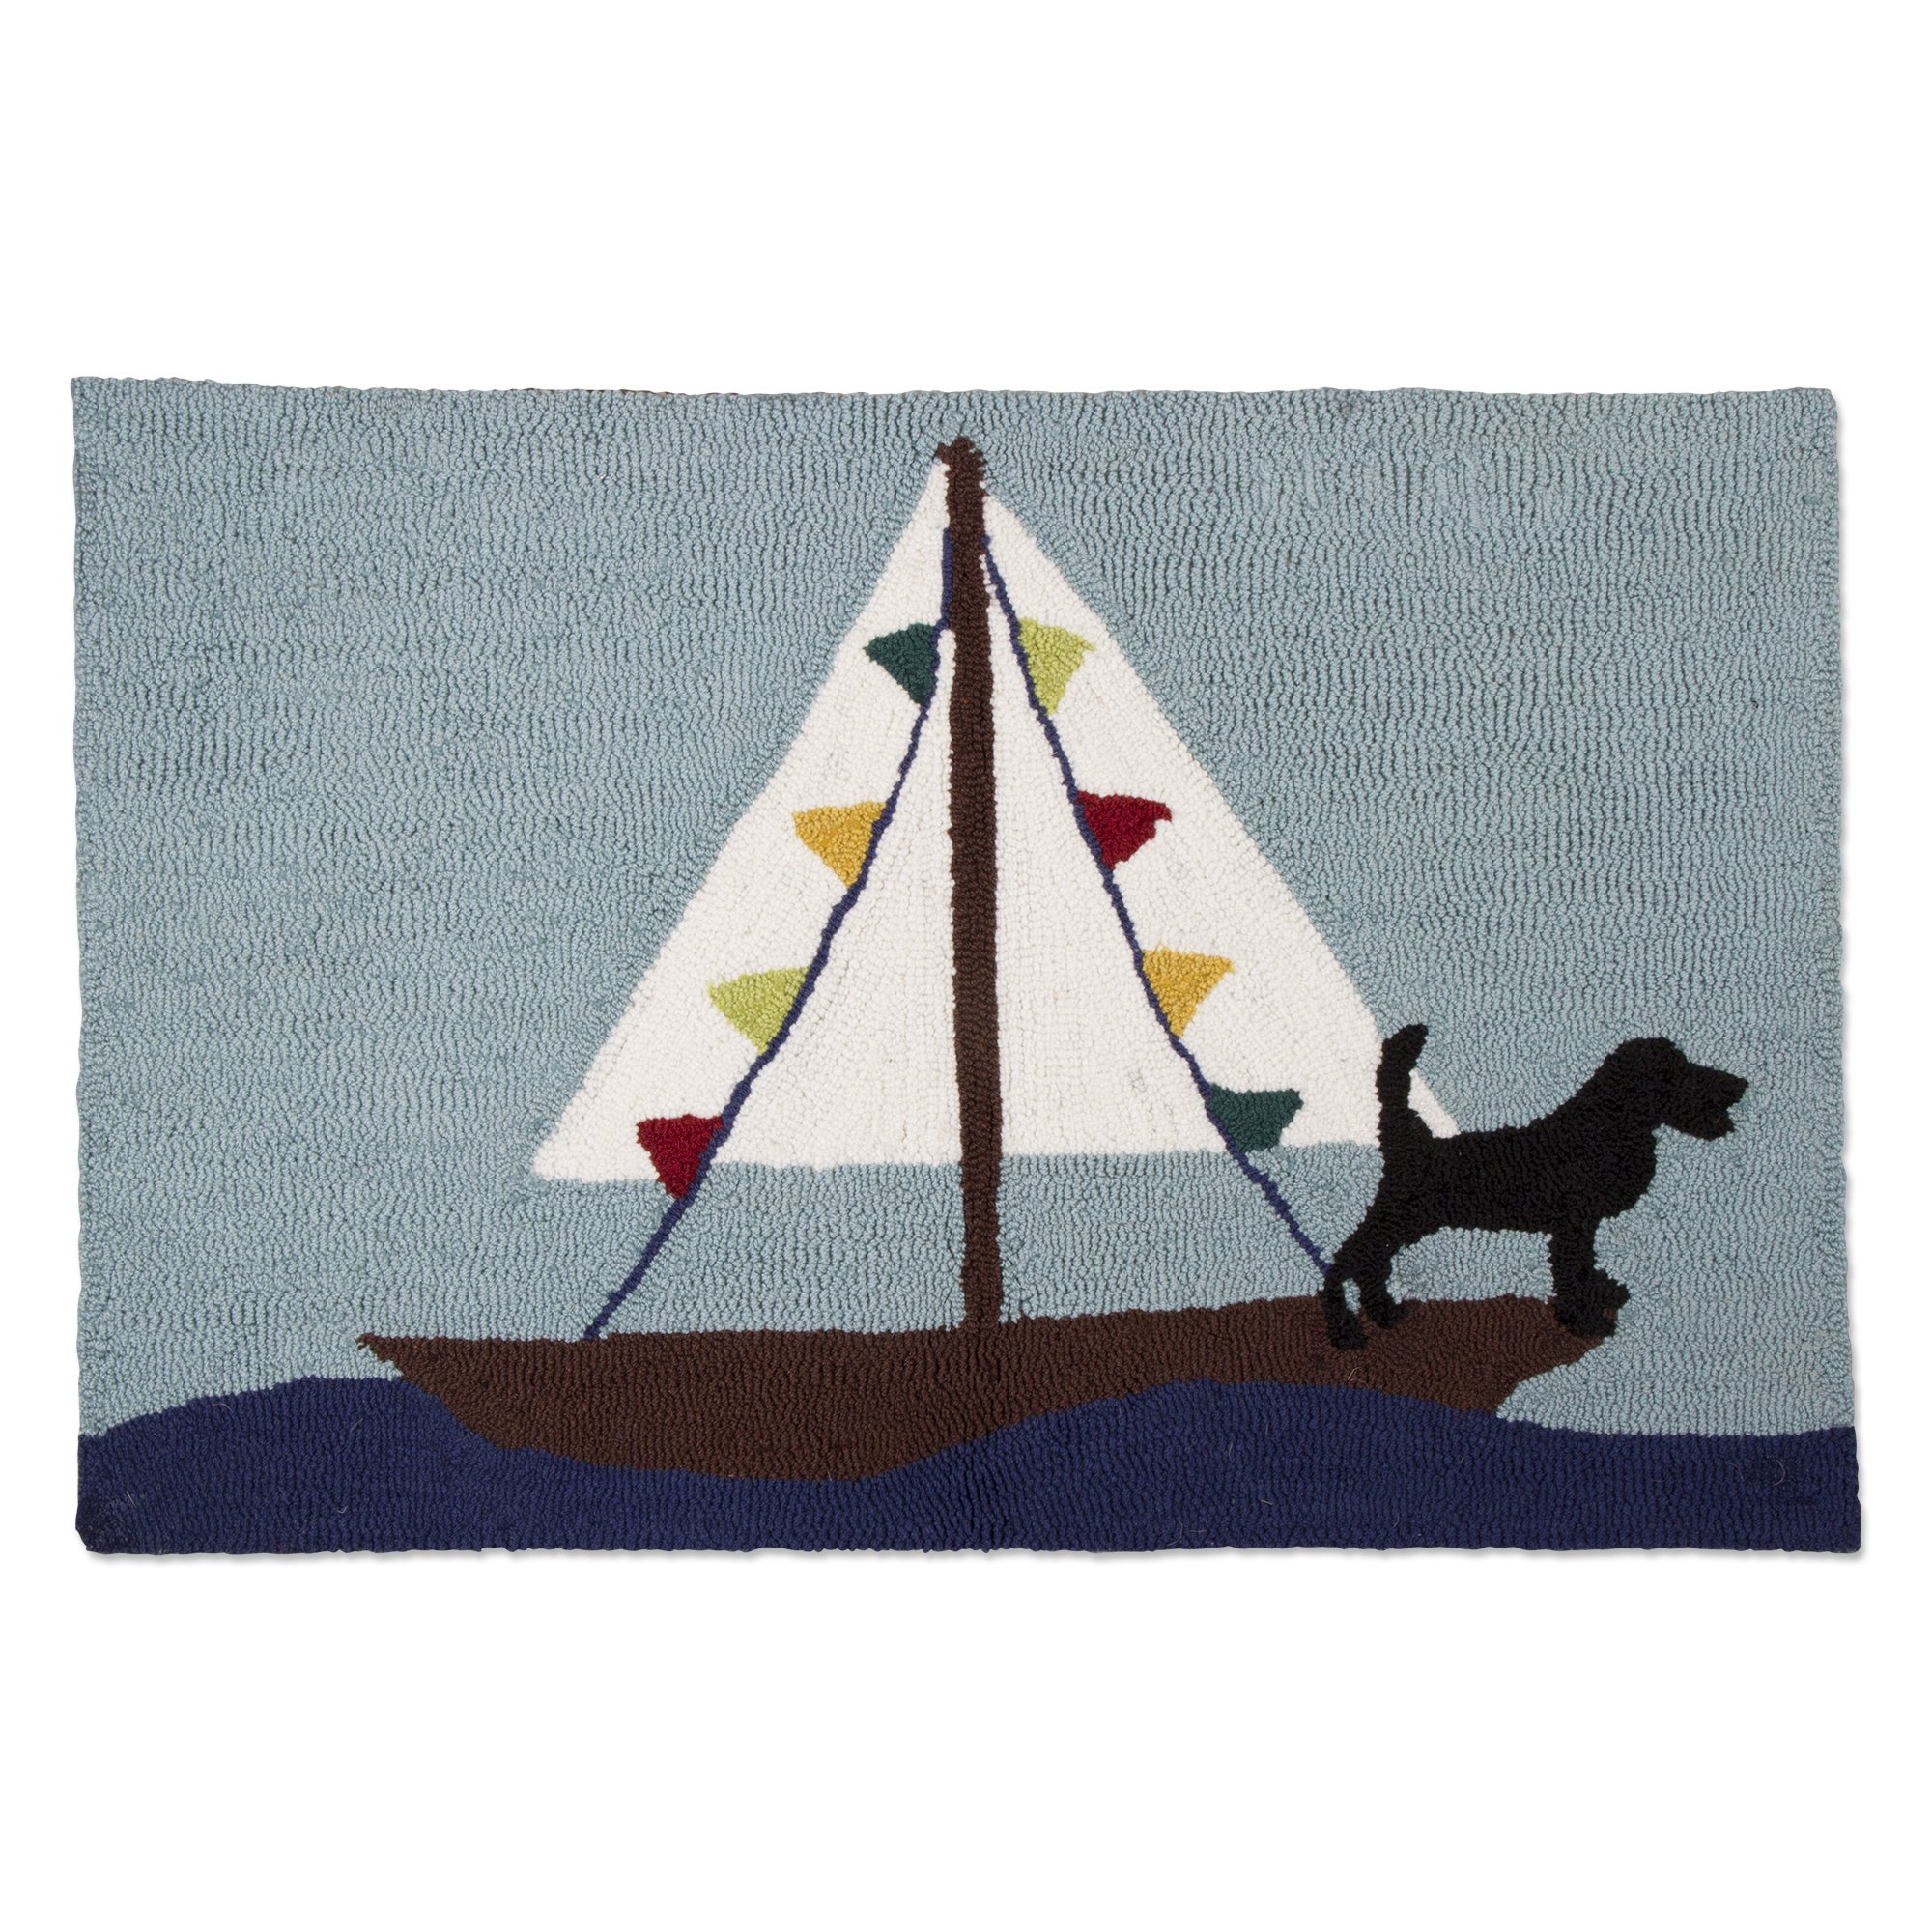 tag - Sailing Polyester Rug, Add Some Style to Your Home, Multi (34'' x 22'')